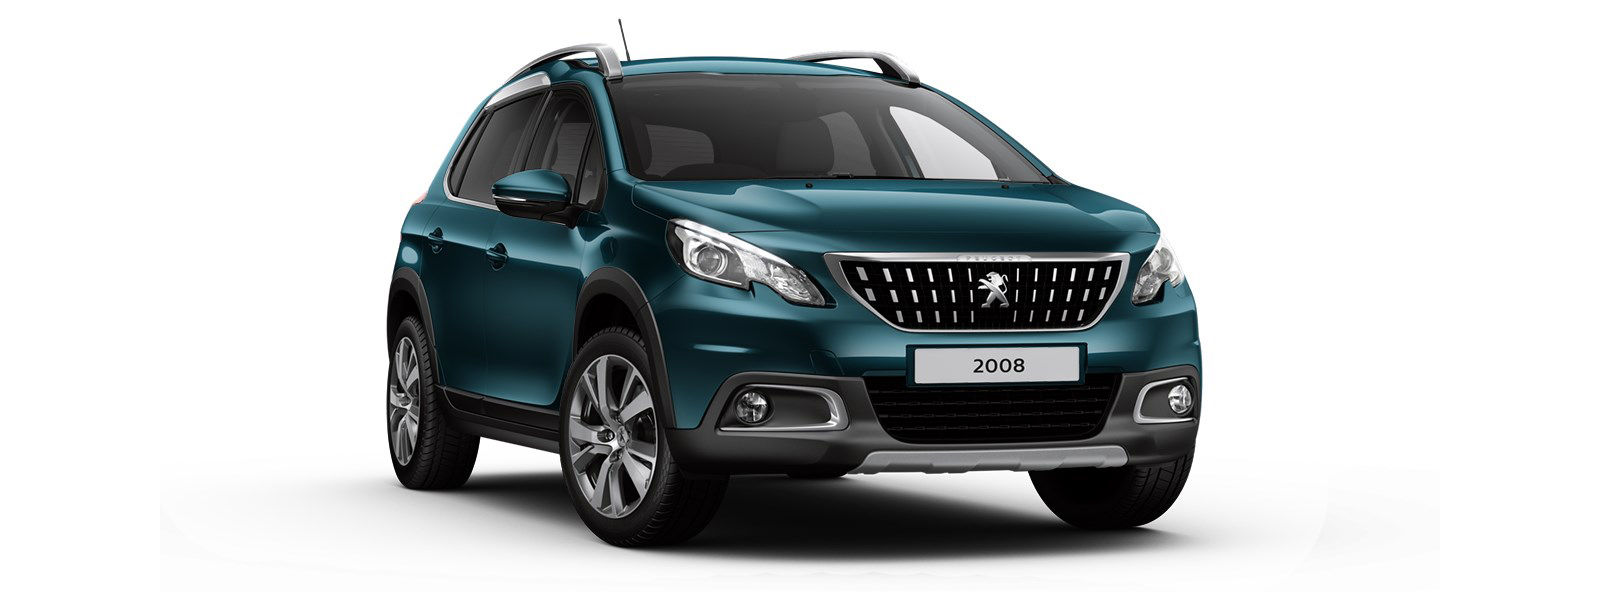 peugeot 3008 white pearl with Peugeot 2008 Colours Guide 0316 on Opel Grandland X 2017 Couleurs moreover Peugeot 3008 Gt Line At 2017 44327 together with 5008 Suv 12 Puretech Allure 5dr likewise Peugeot New 3008 Gt 2016 Pearl White Norev 85455 0 furthermore Peugeot 3008 Tout Sur Le Crossover De La Marque Au Lion.